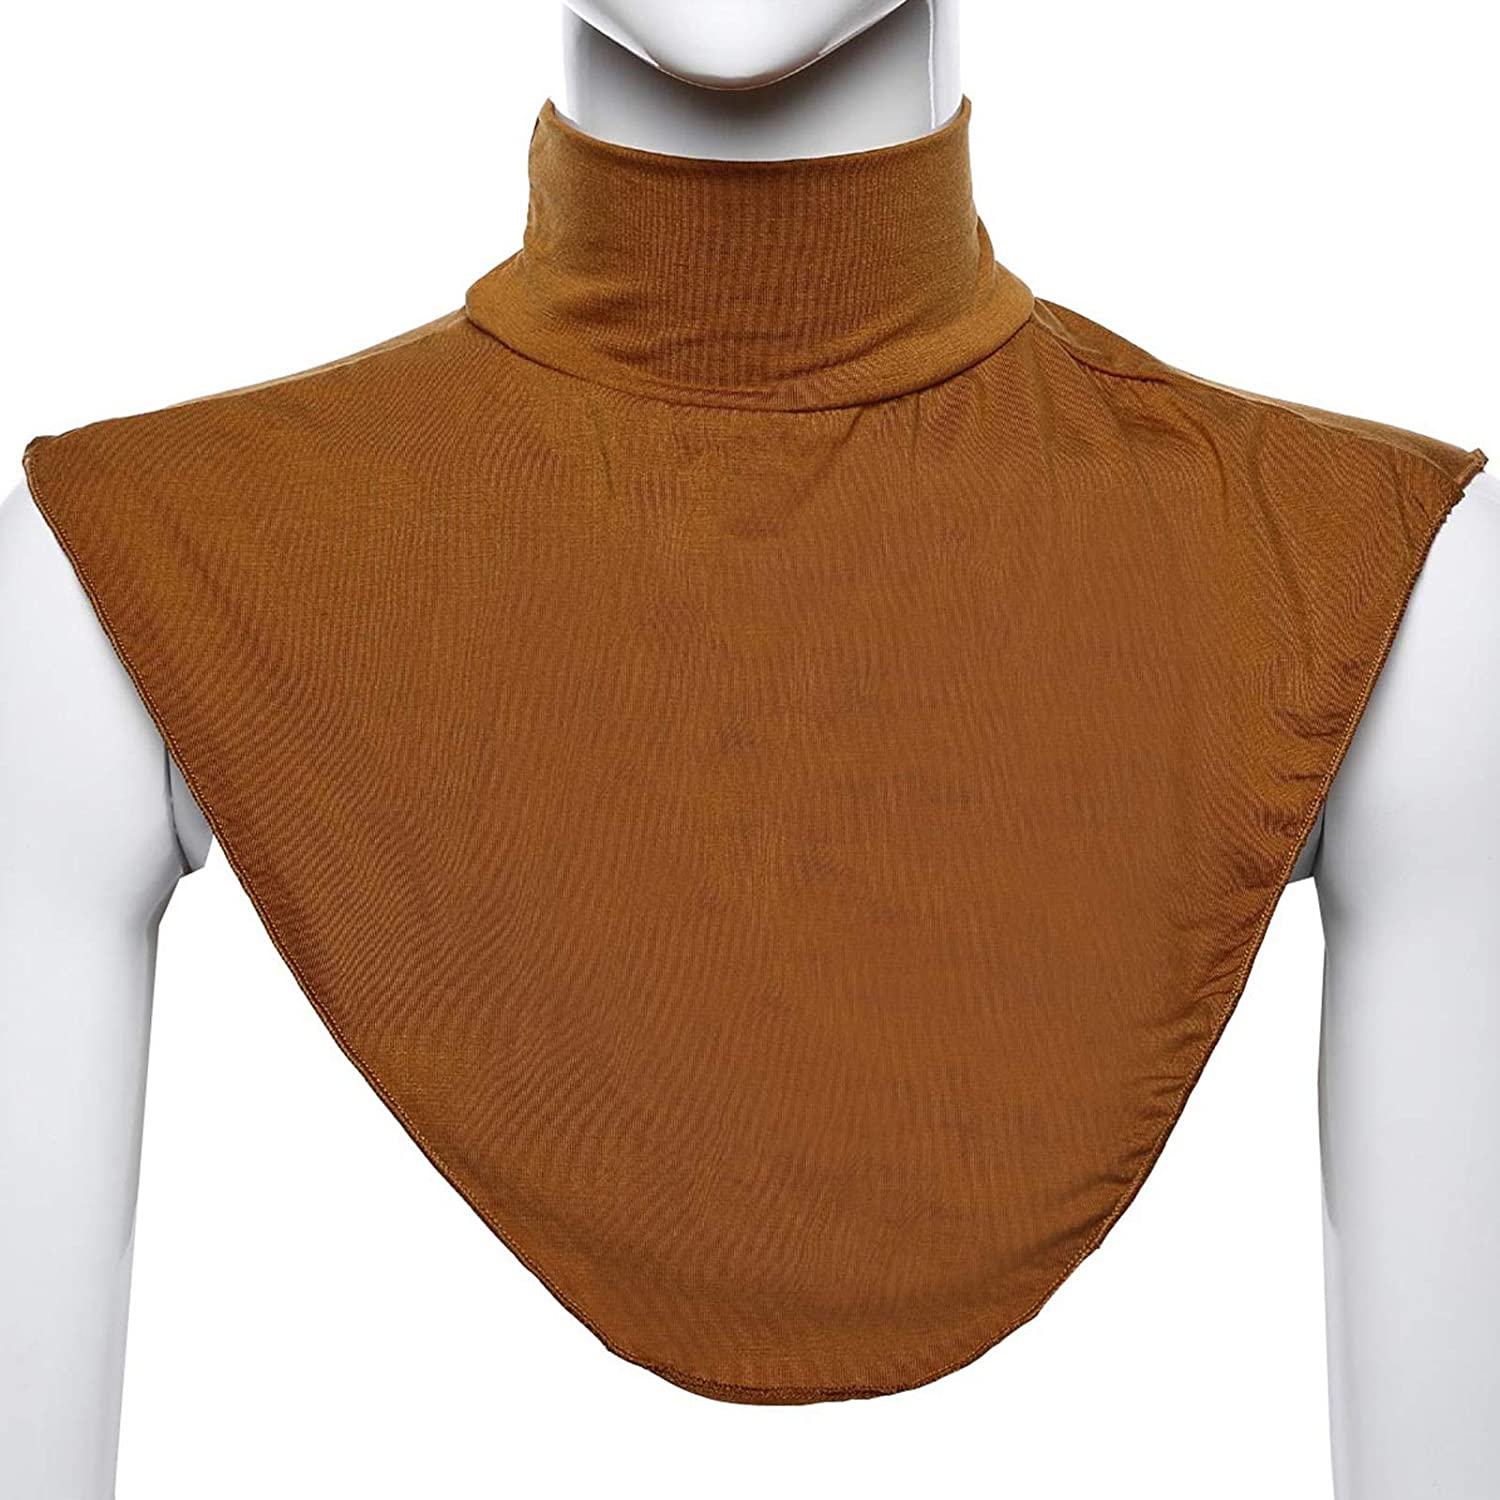 YOUSIKE Muslim Scarf, Womens Mock Turtleneck Dickey Muslim Modal Detachable Half Top Solid Color False Fake Collar Islamic Hijab Extensions Stretch Neck Cover